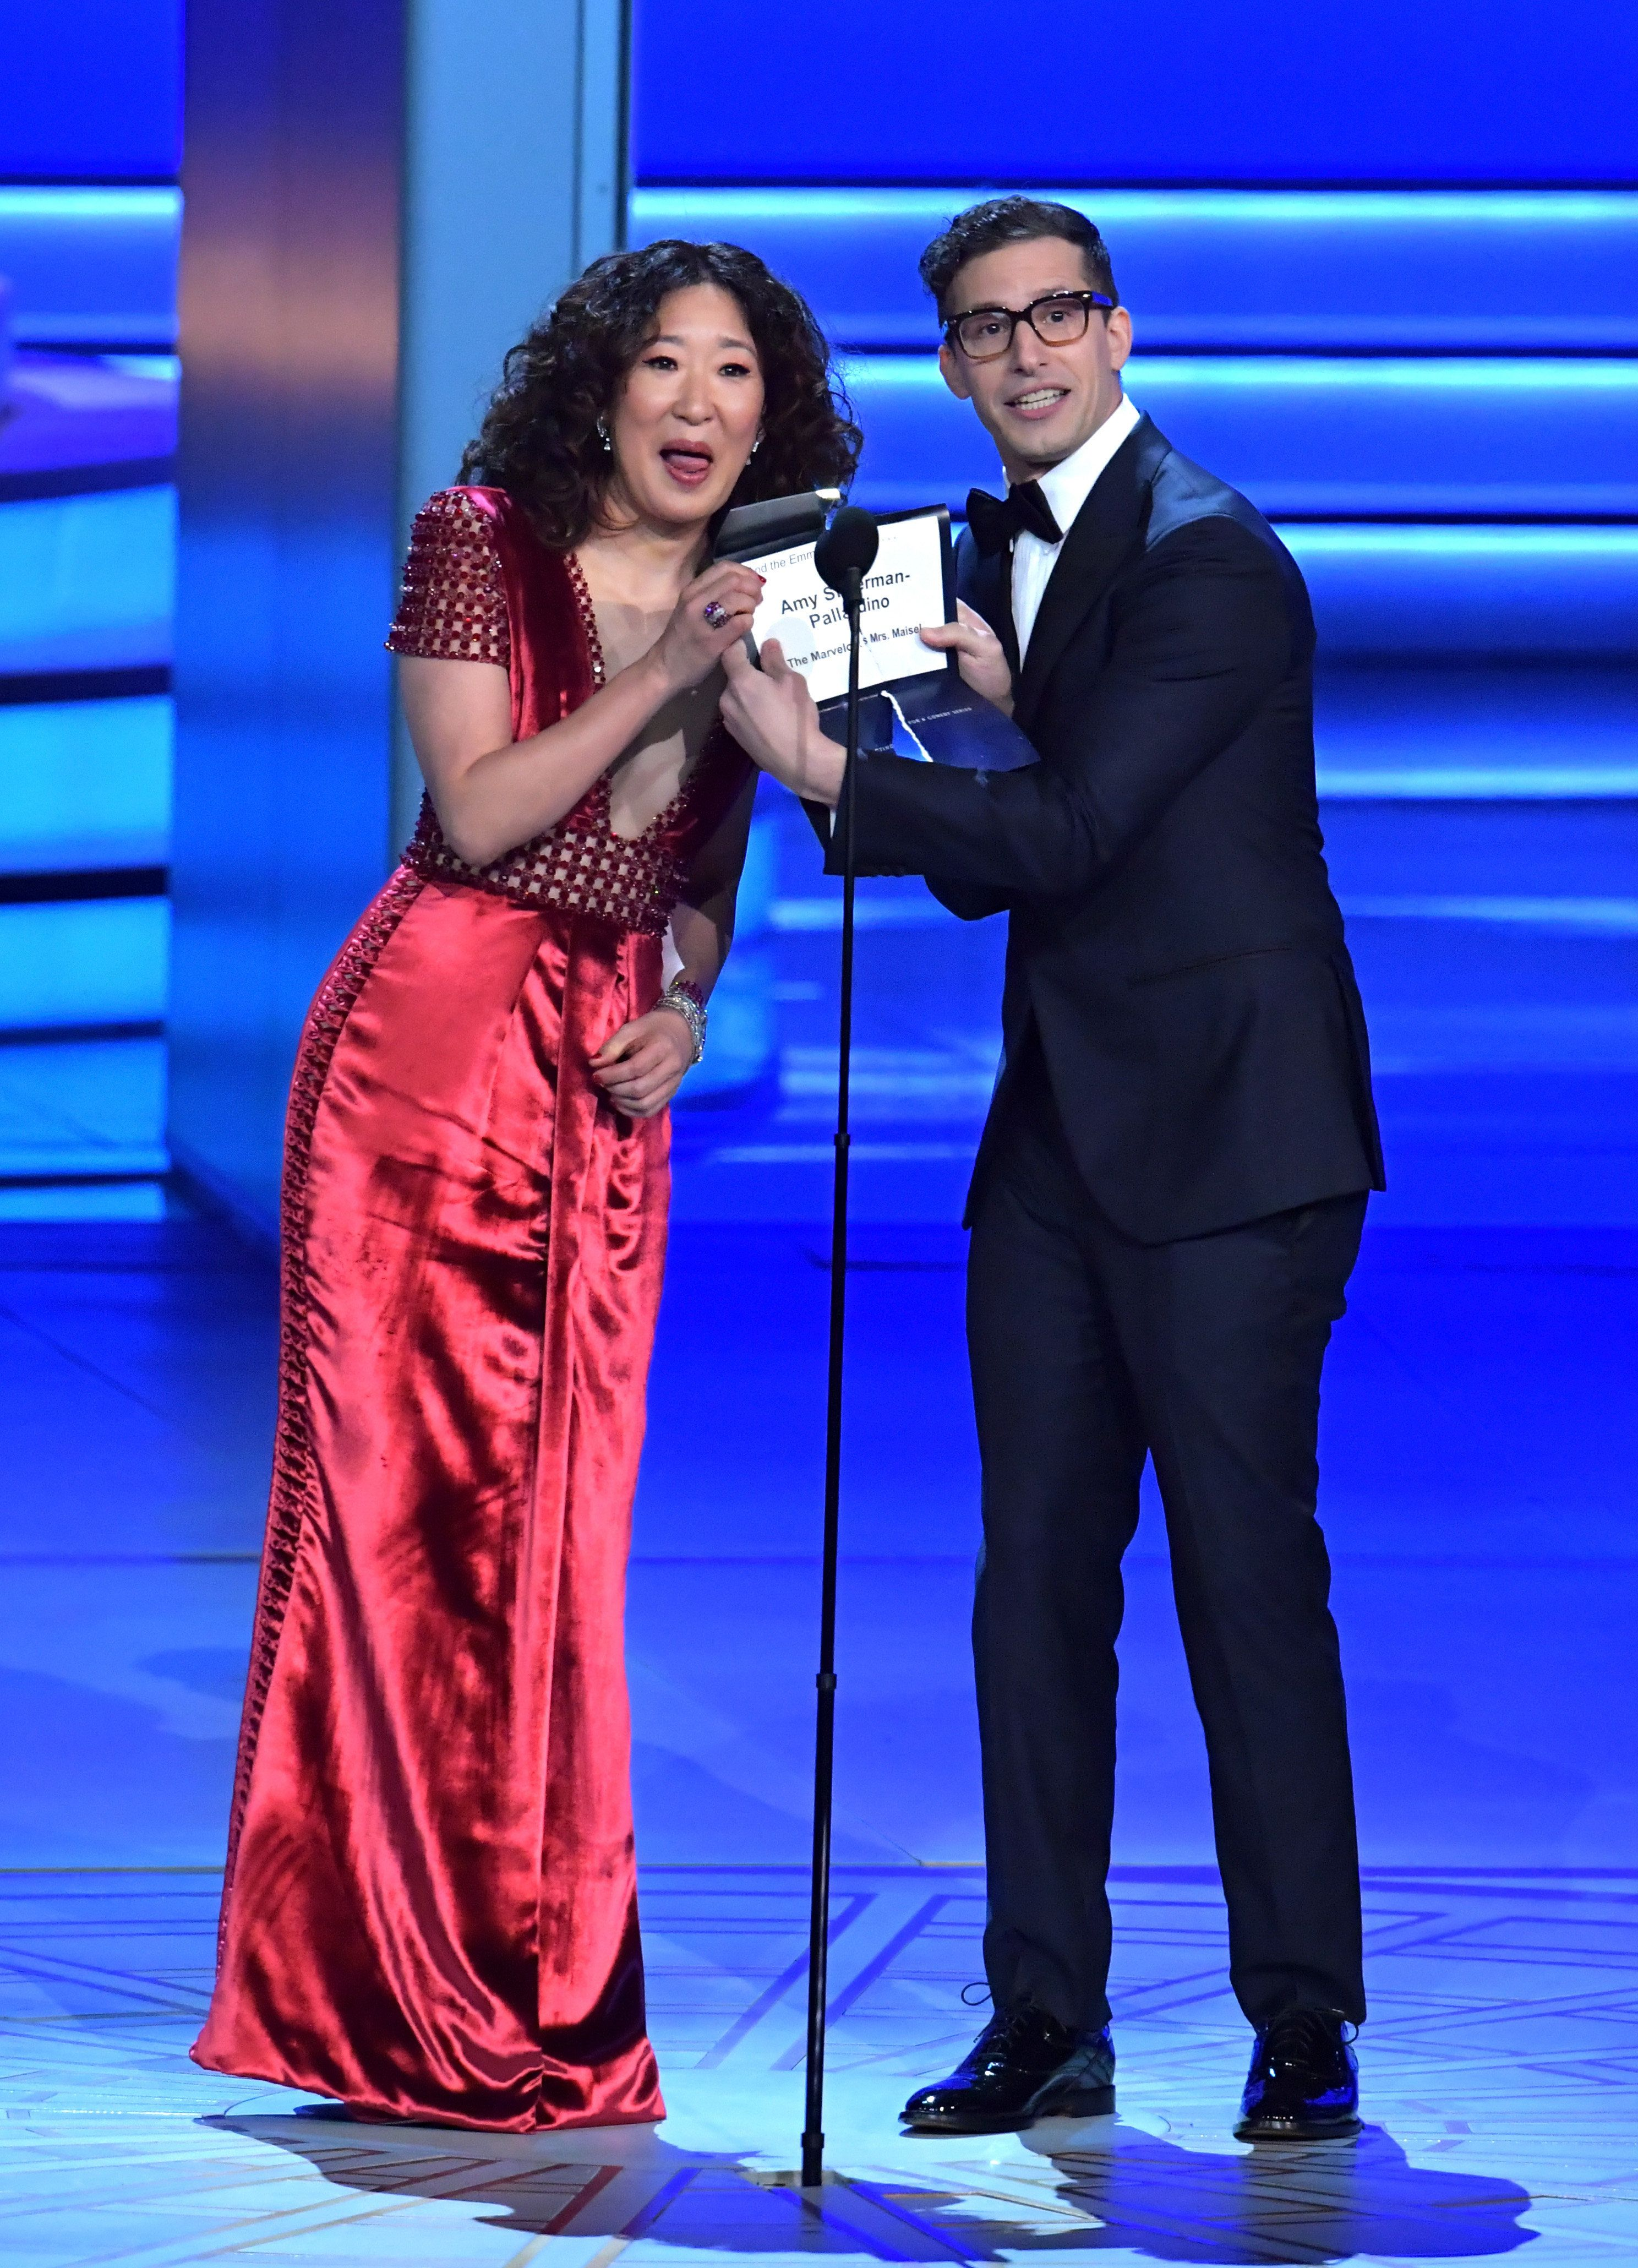 LOS ANGELES, CA - SEPTEMBER 17:  Sandra Oh (L) and Andy Samberg speak onstage during the 70th Emmy Awards at Microsoft Theater on September 17, 2018 in Los Angeles, California.  (Photo by Lester Cohen/WireImage)